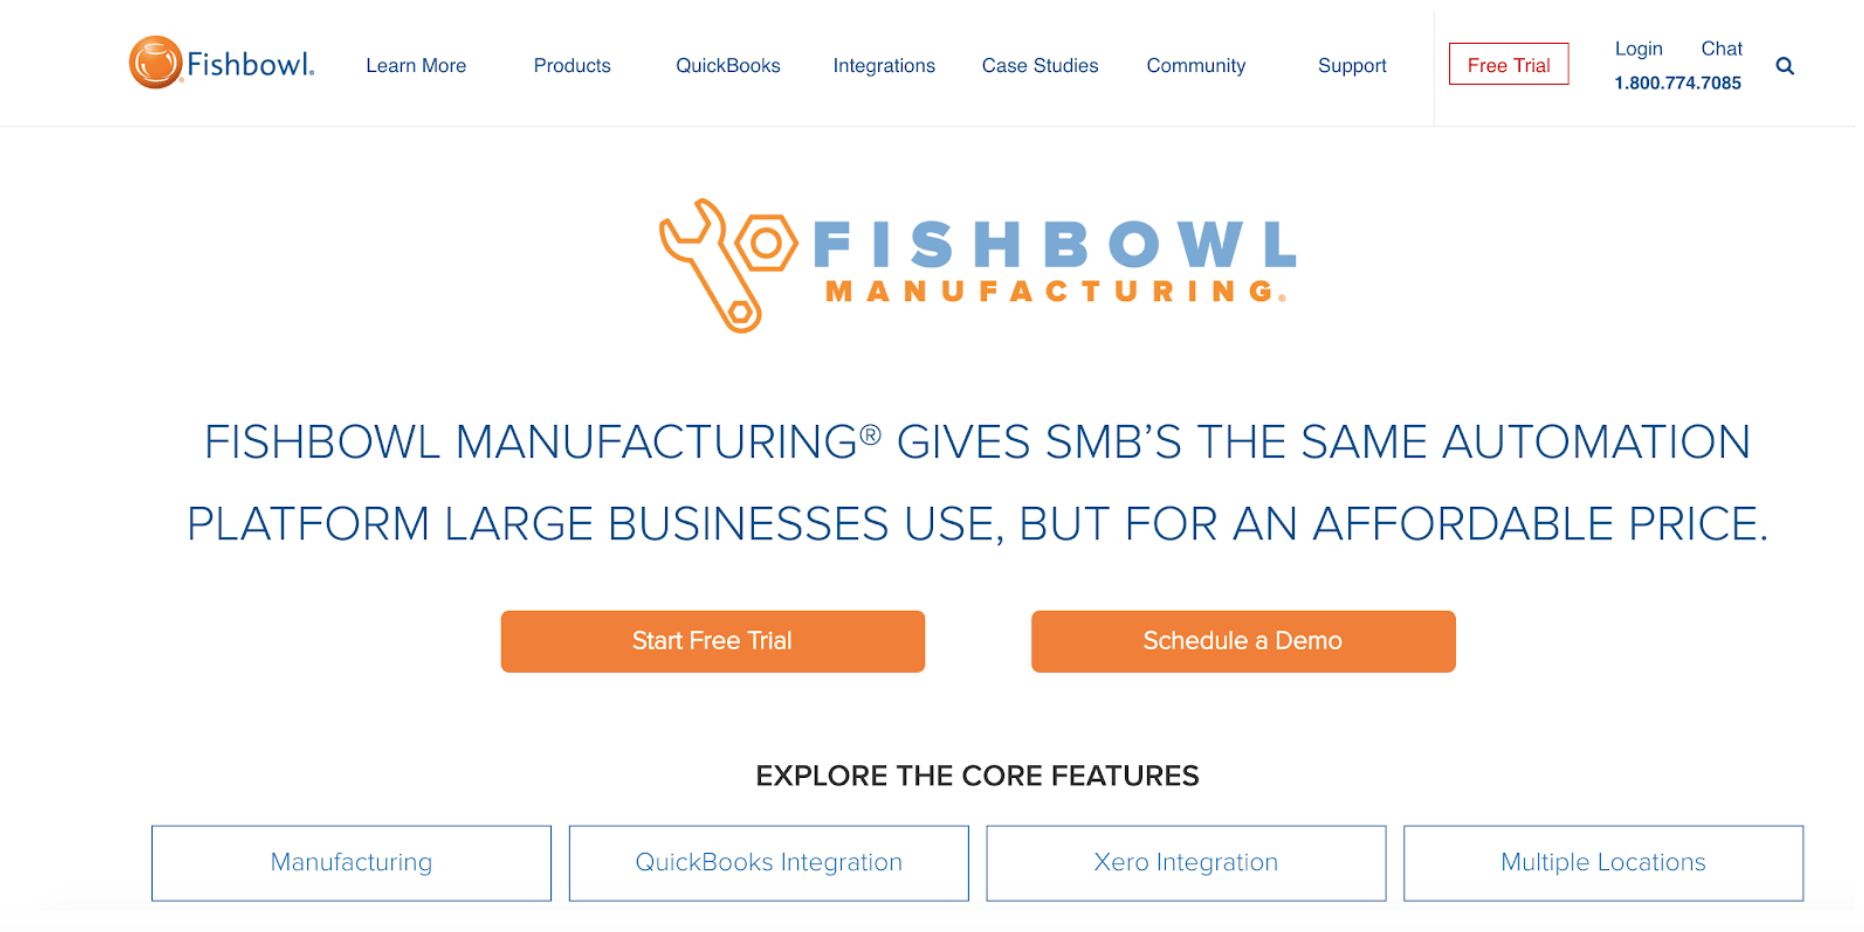 fishbowl manufacturing software